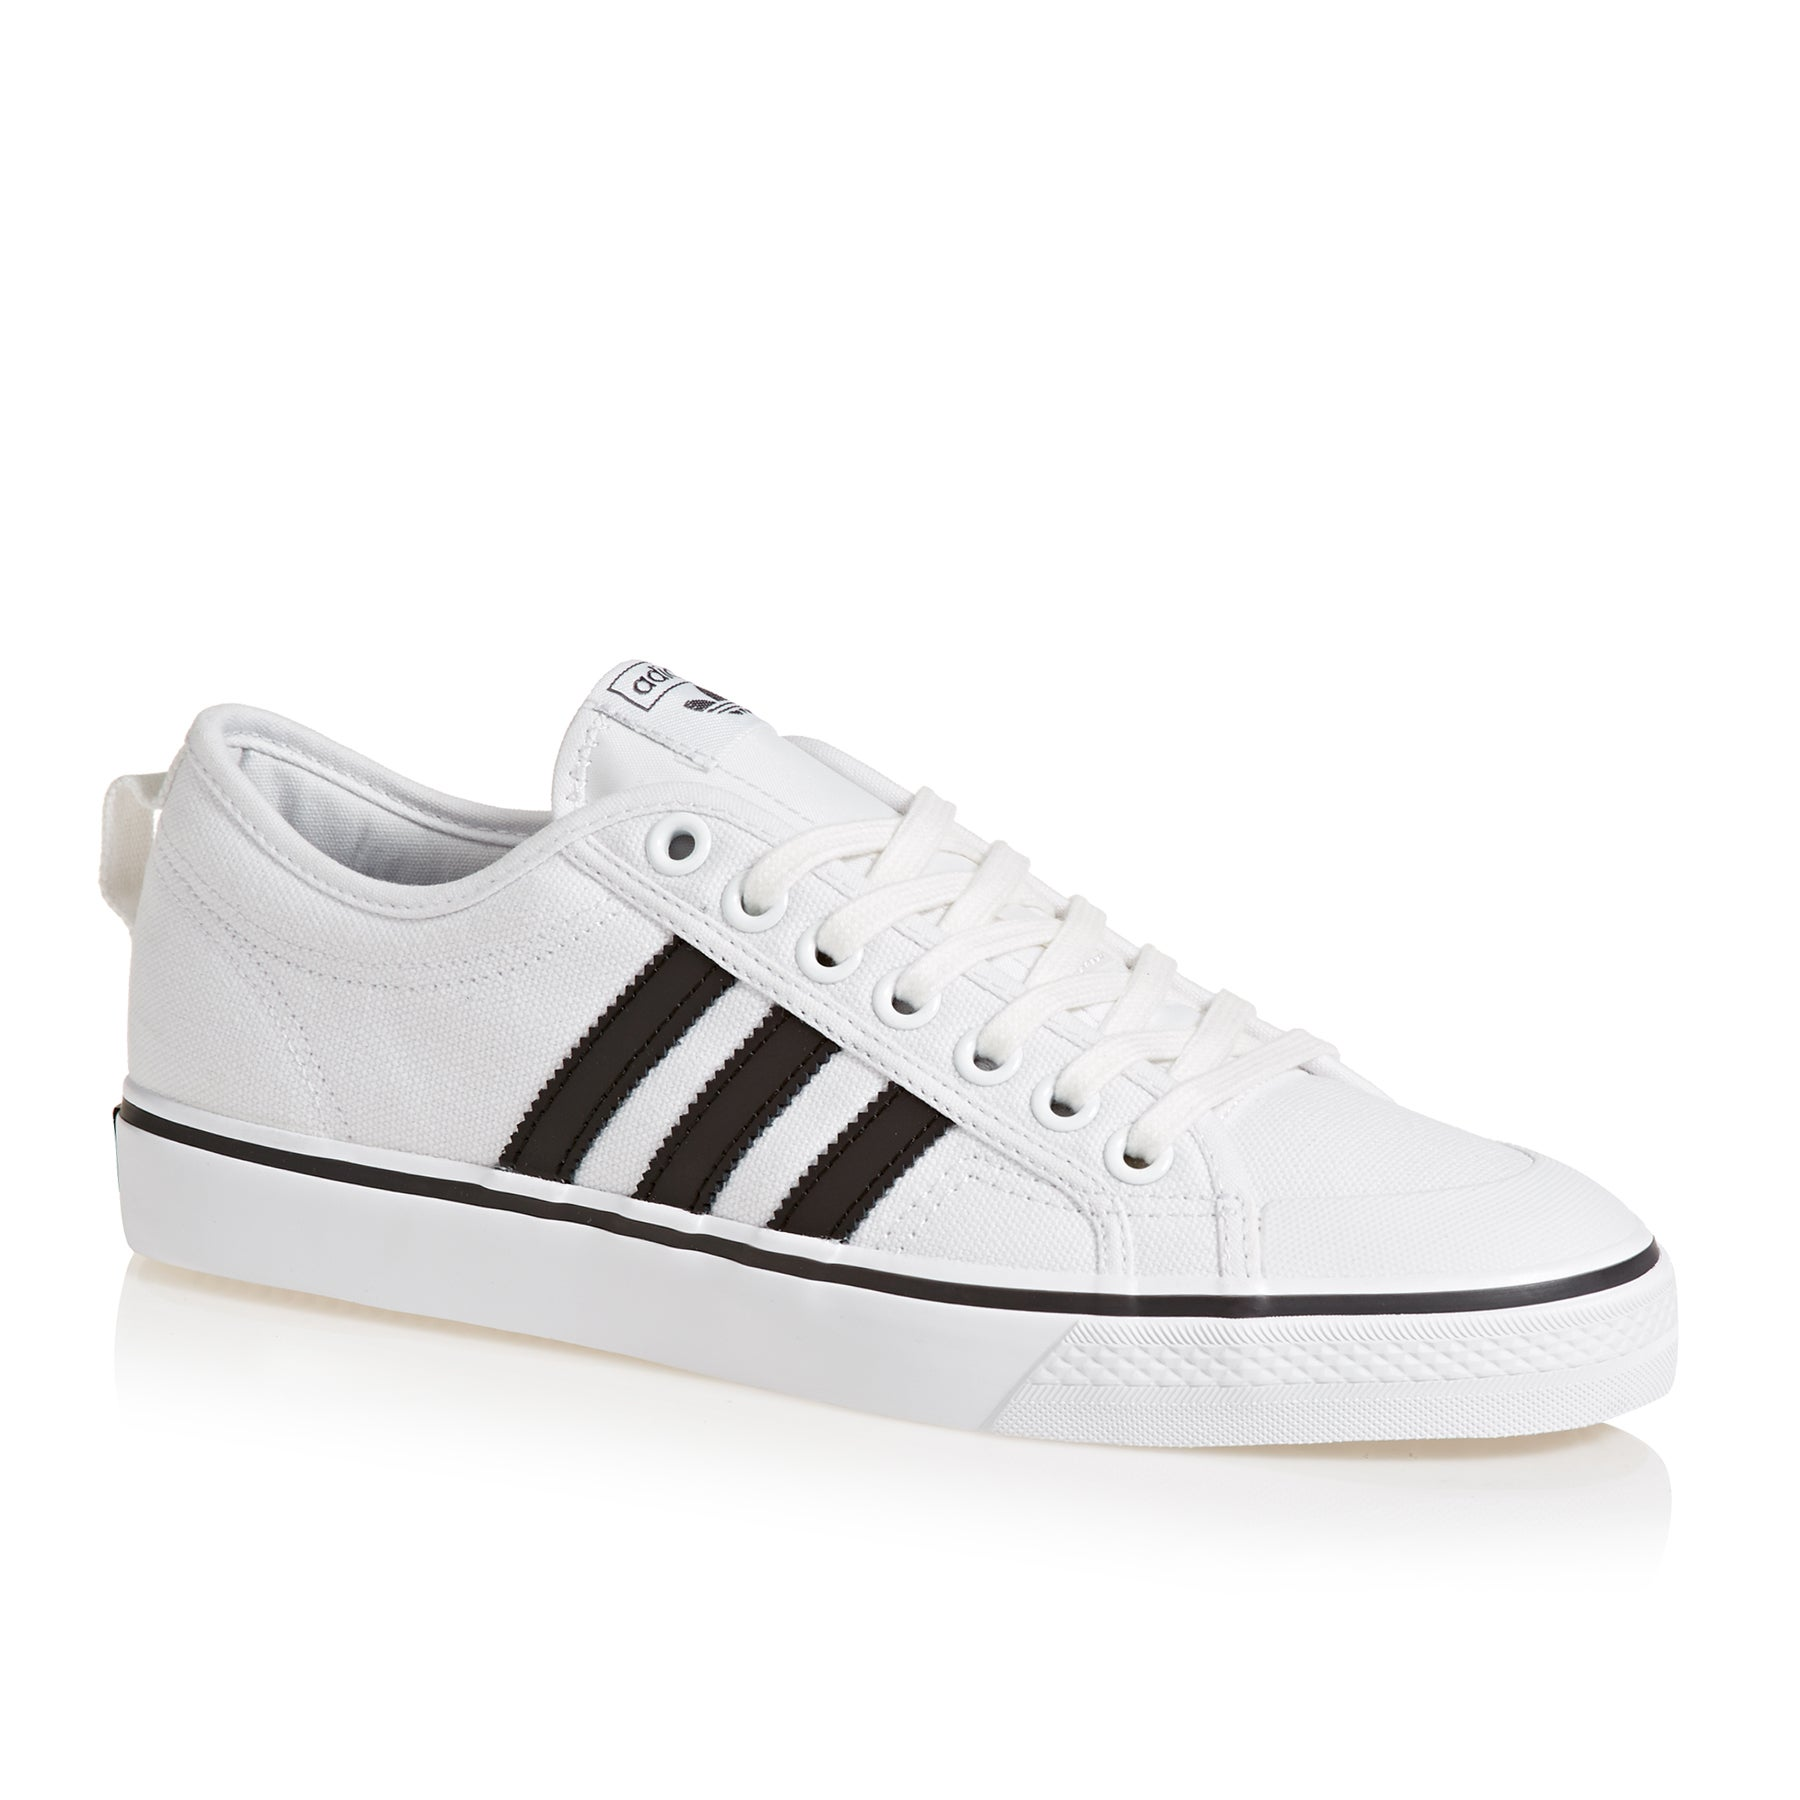 Adidas Nizza Shoes Originals Surfdome Available From v8zz0qYw